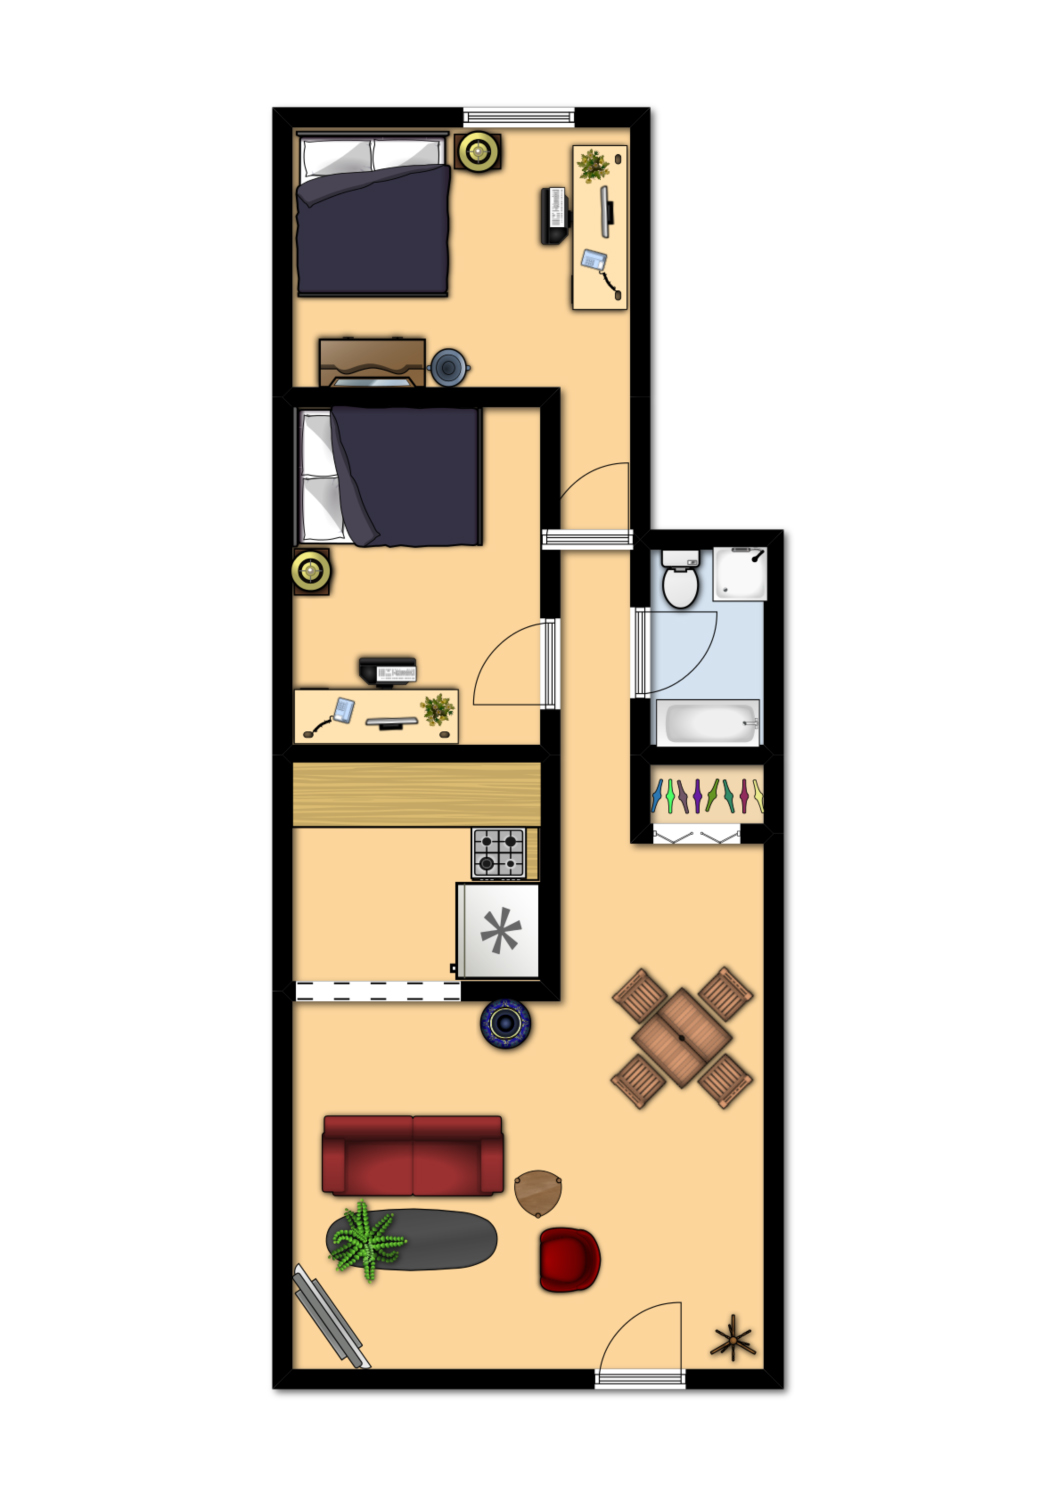 600 square foot apartment layout 600 sq ft apartment floor for Square foot of 20x20